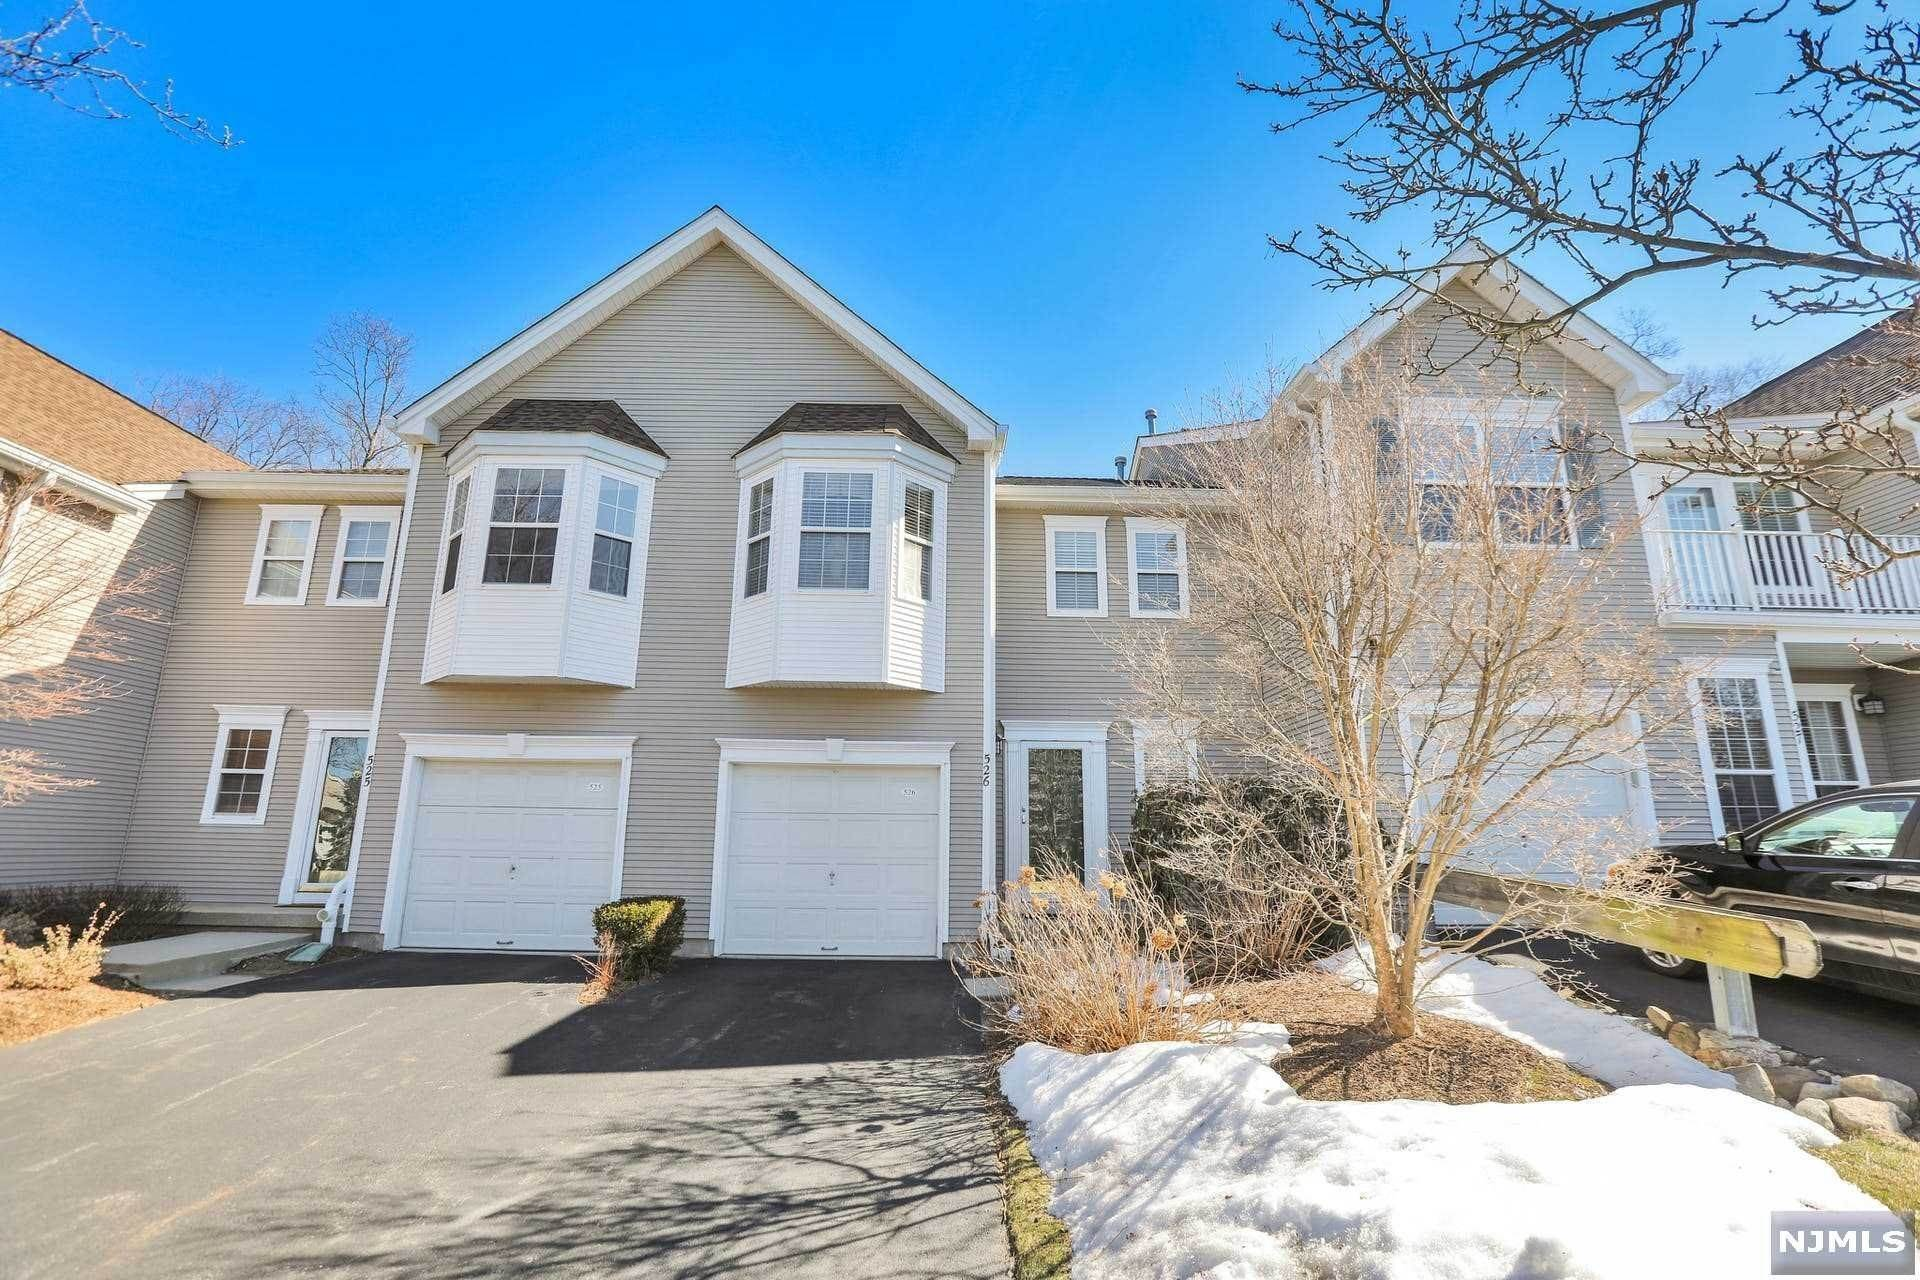 Condominium for Sale at 526 Green Mountain Road Mahwah, New Jersey, 07430 United States